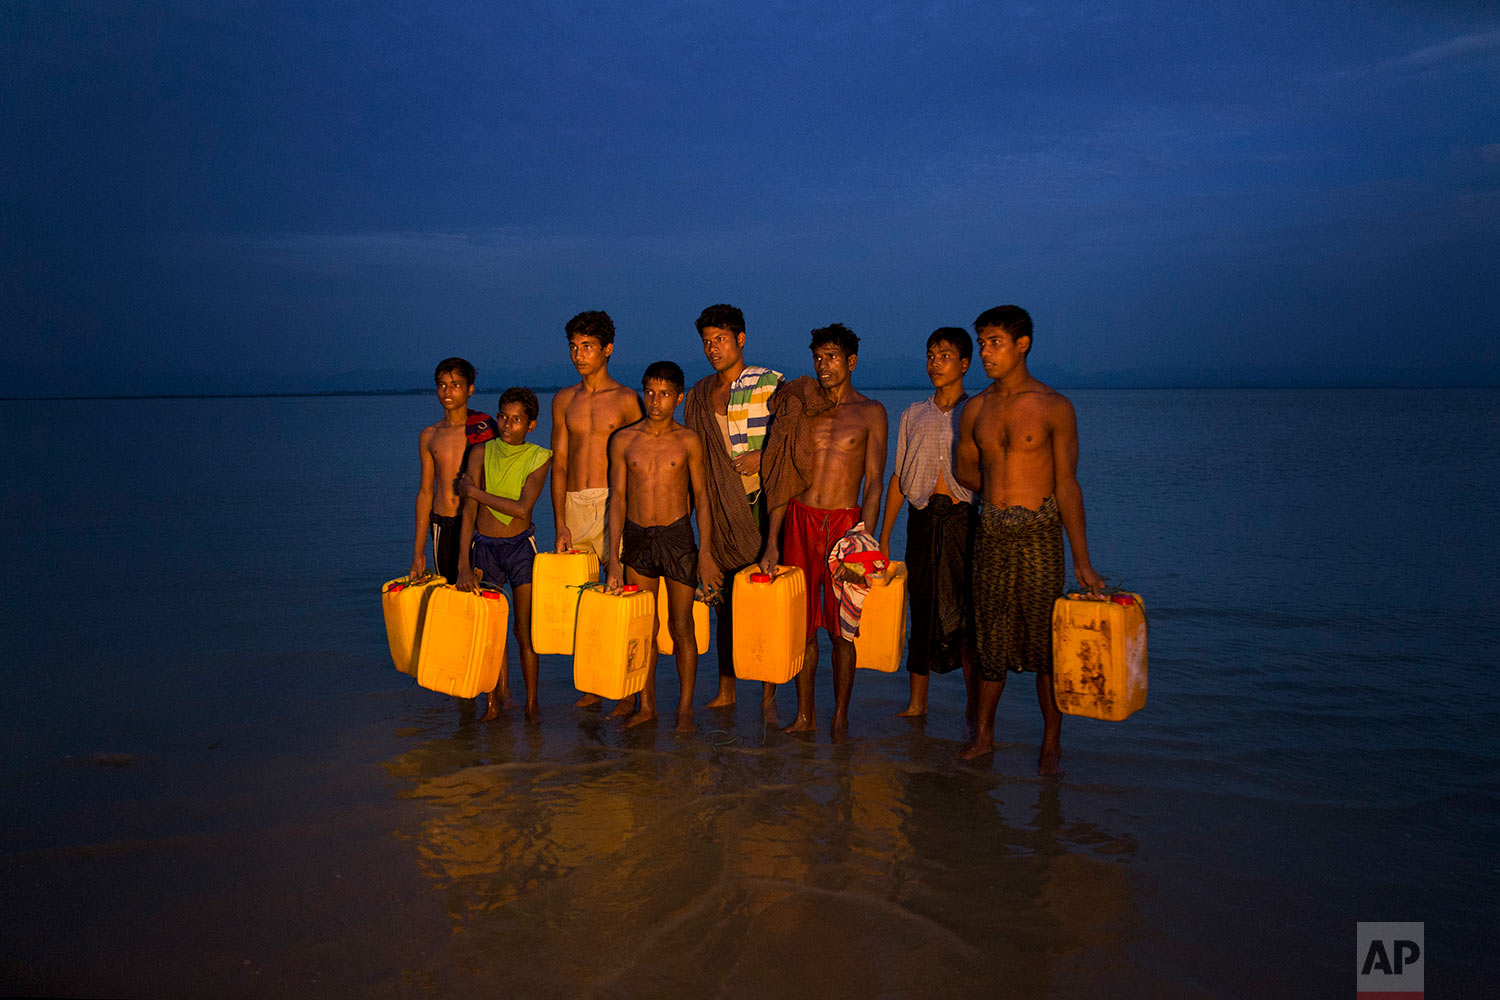 In this Nov. 5, 2017, photo, newly arrived Rohingya Muslims carry yellow plastic drums they used as flotation aids and listen to Bangladeshi authorities, not pictured, after swimming across the Naf river at Shah Porir Dwip, Bangladesh. The Naf river is a natural border between Myanmar and Bangladesh. Several young Rohingya Muslims escaping the violence in their homeland of Myanmar are now so desperate that they are swimming to safety into neighboring Bangladesh. (AP Photo/Bernat Armangue)